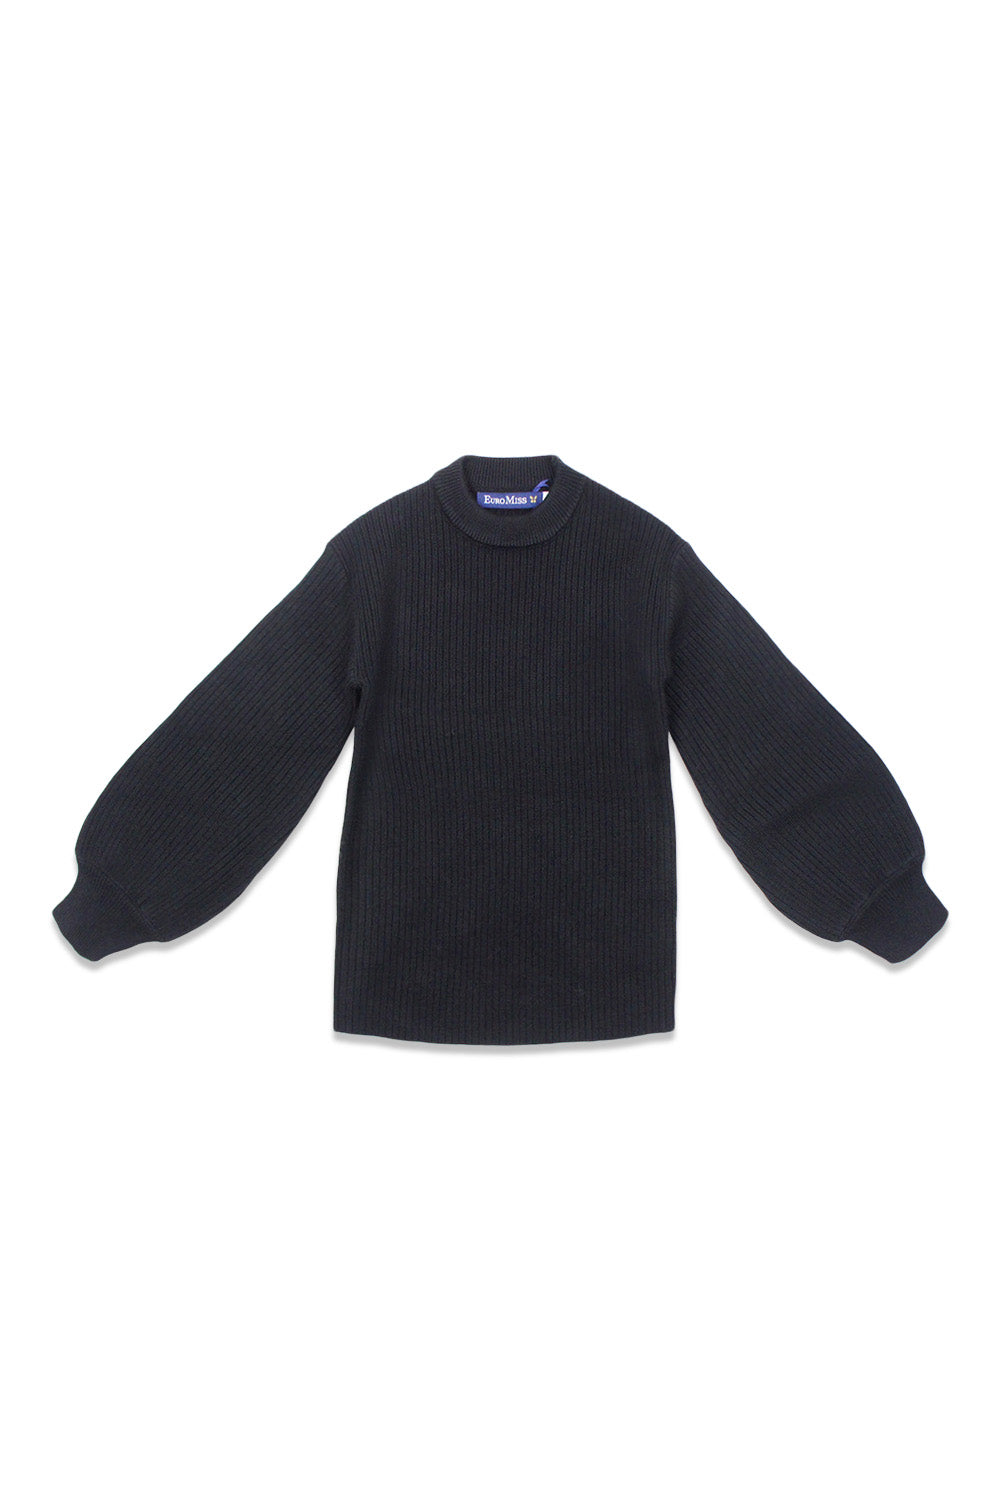 Euro Miss Black Puff Sleeve Sweater